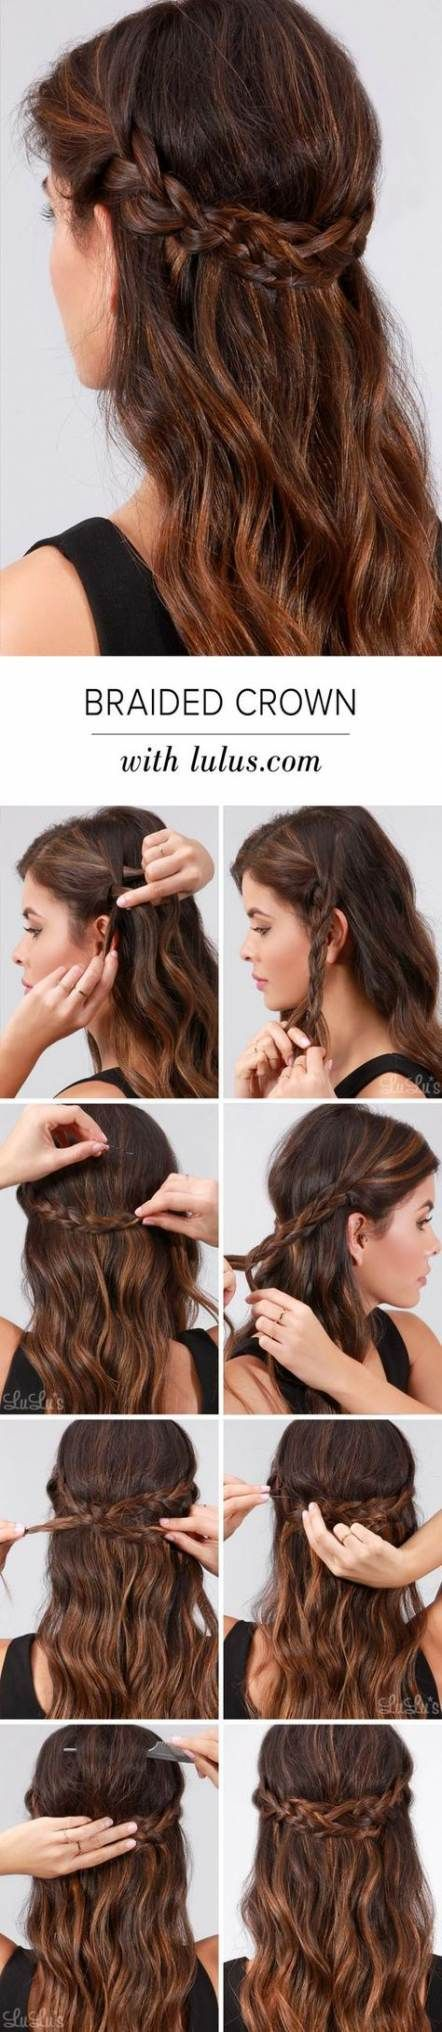 42 Ideas Hair Styles For Girls Step By Step Curly Hair For 2019